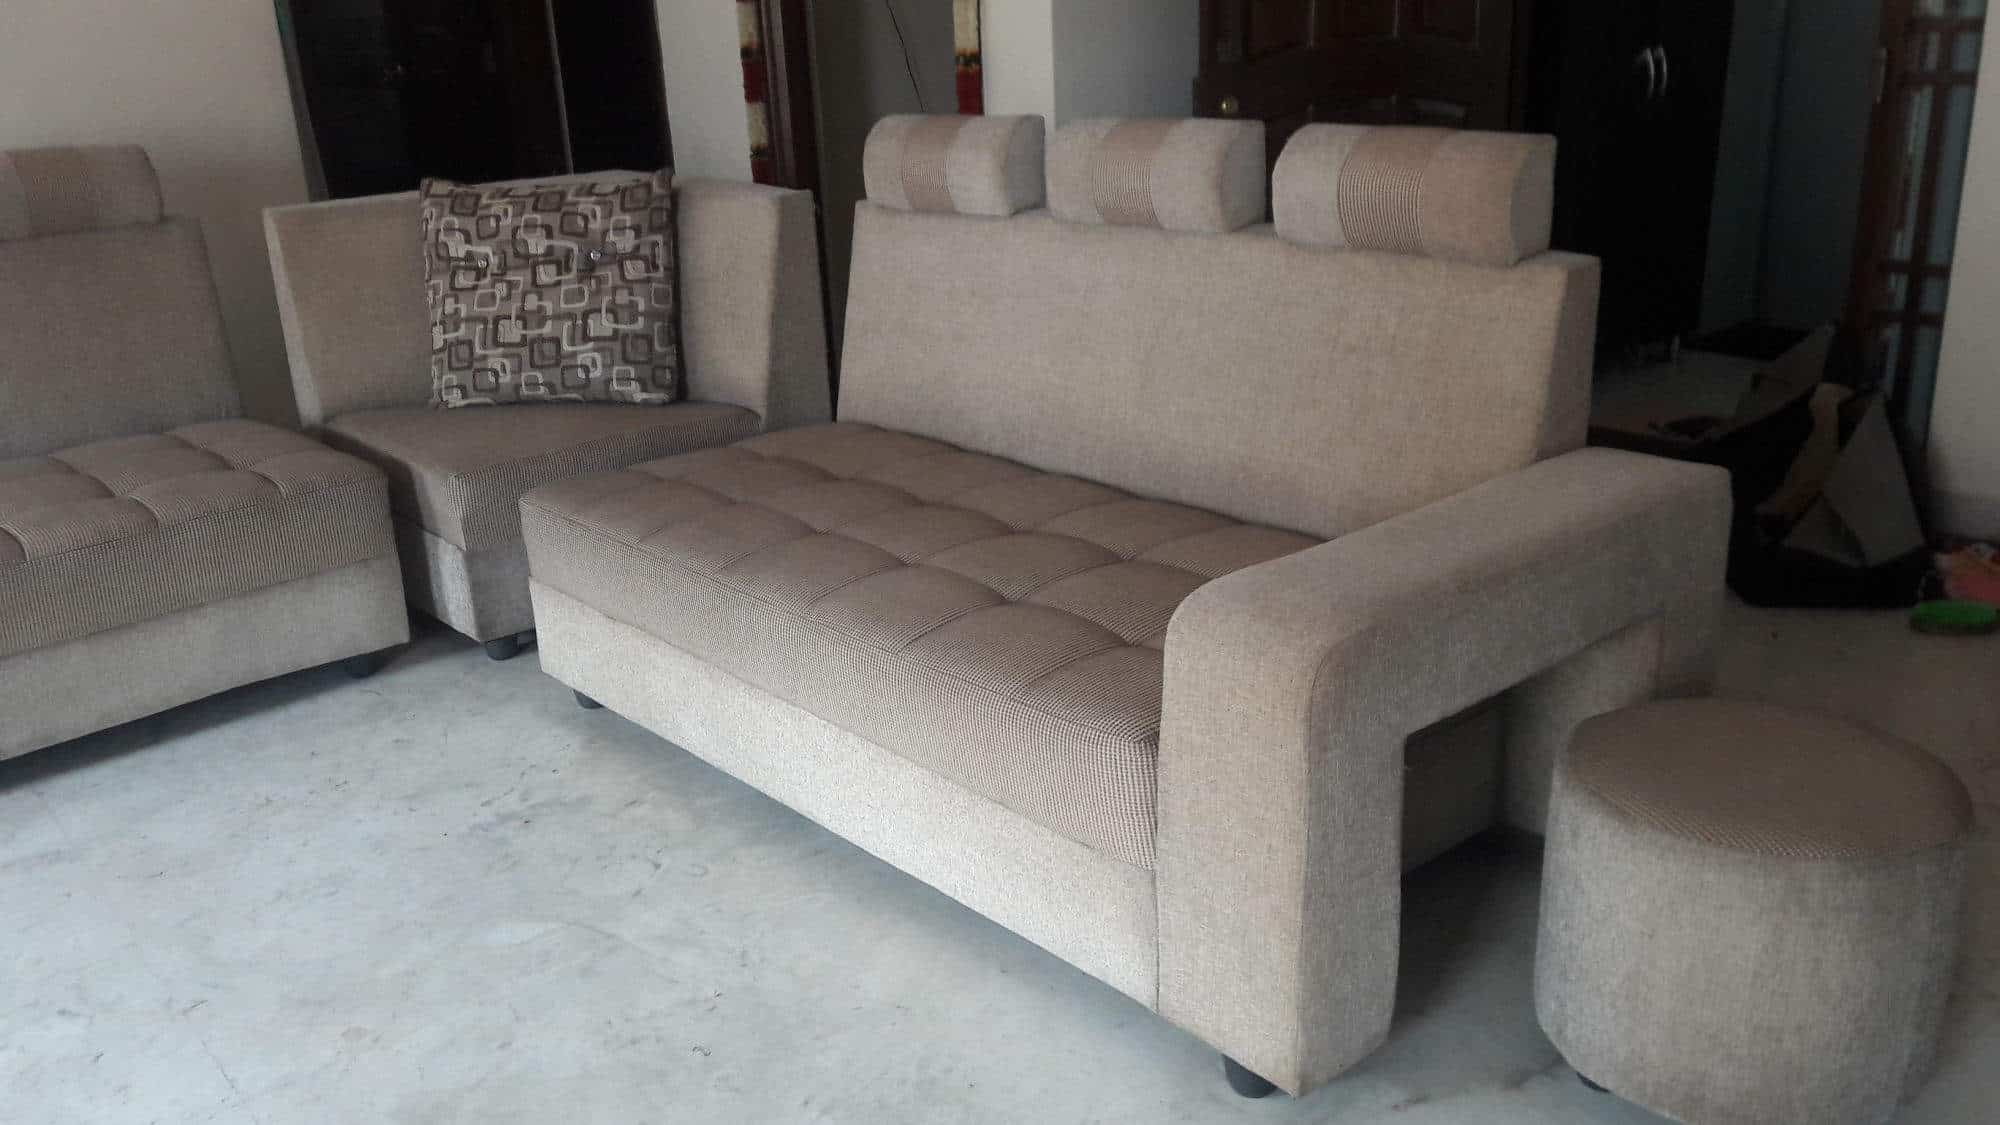 White Star Sofa Works Mehdipatnam Sofa Set Repair & Services in